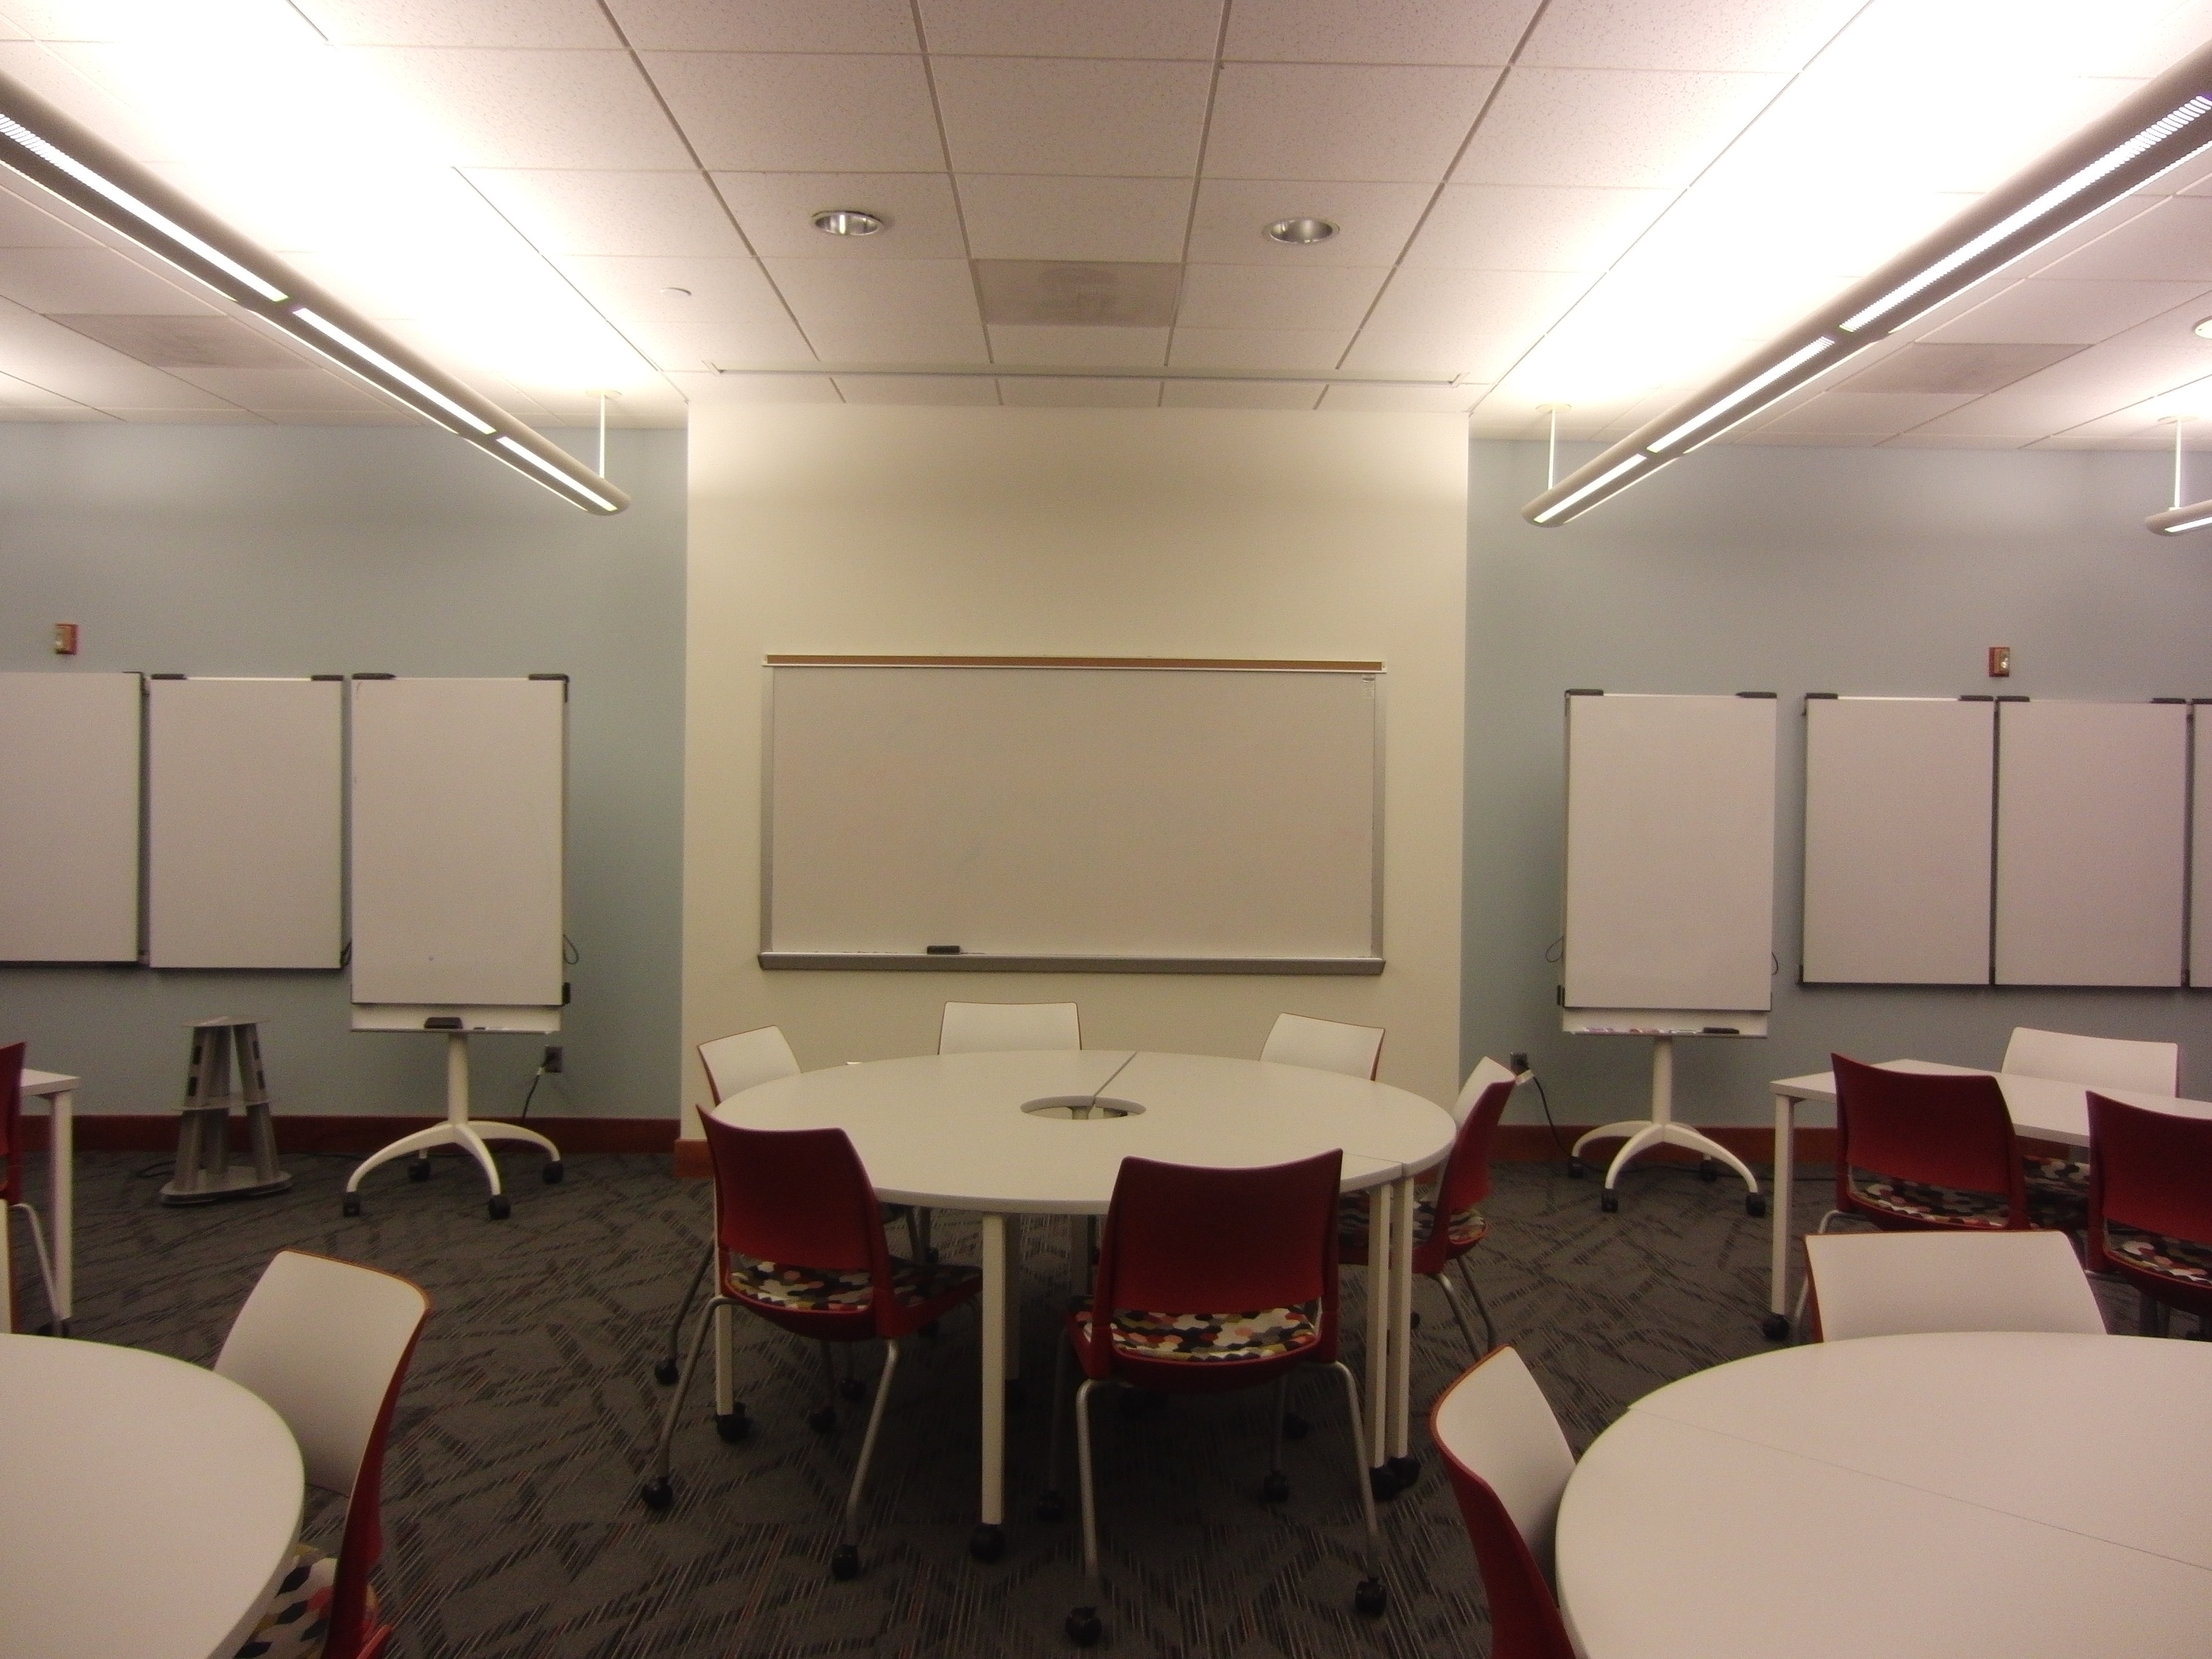 A photo of the room from the back.